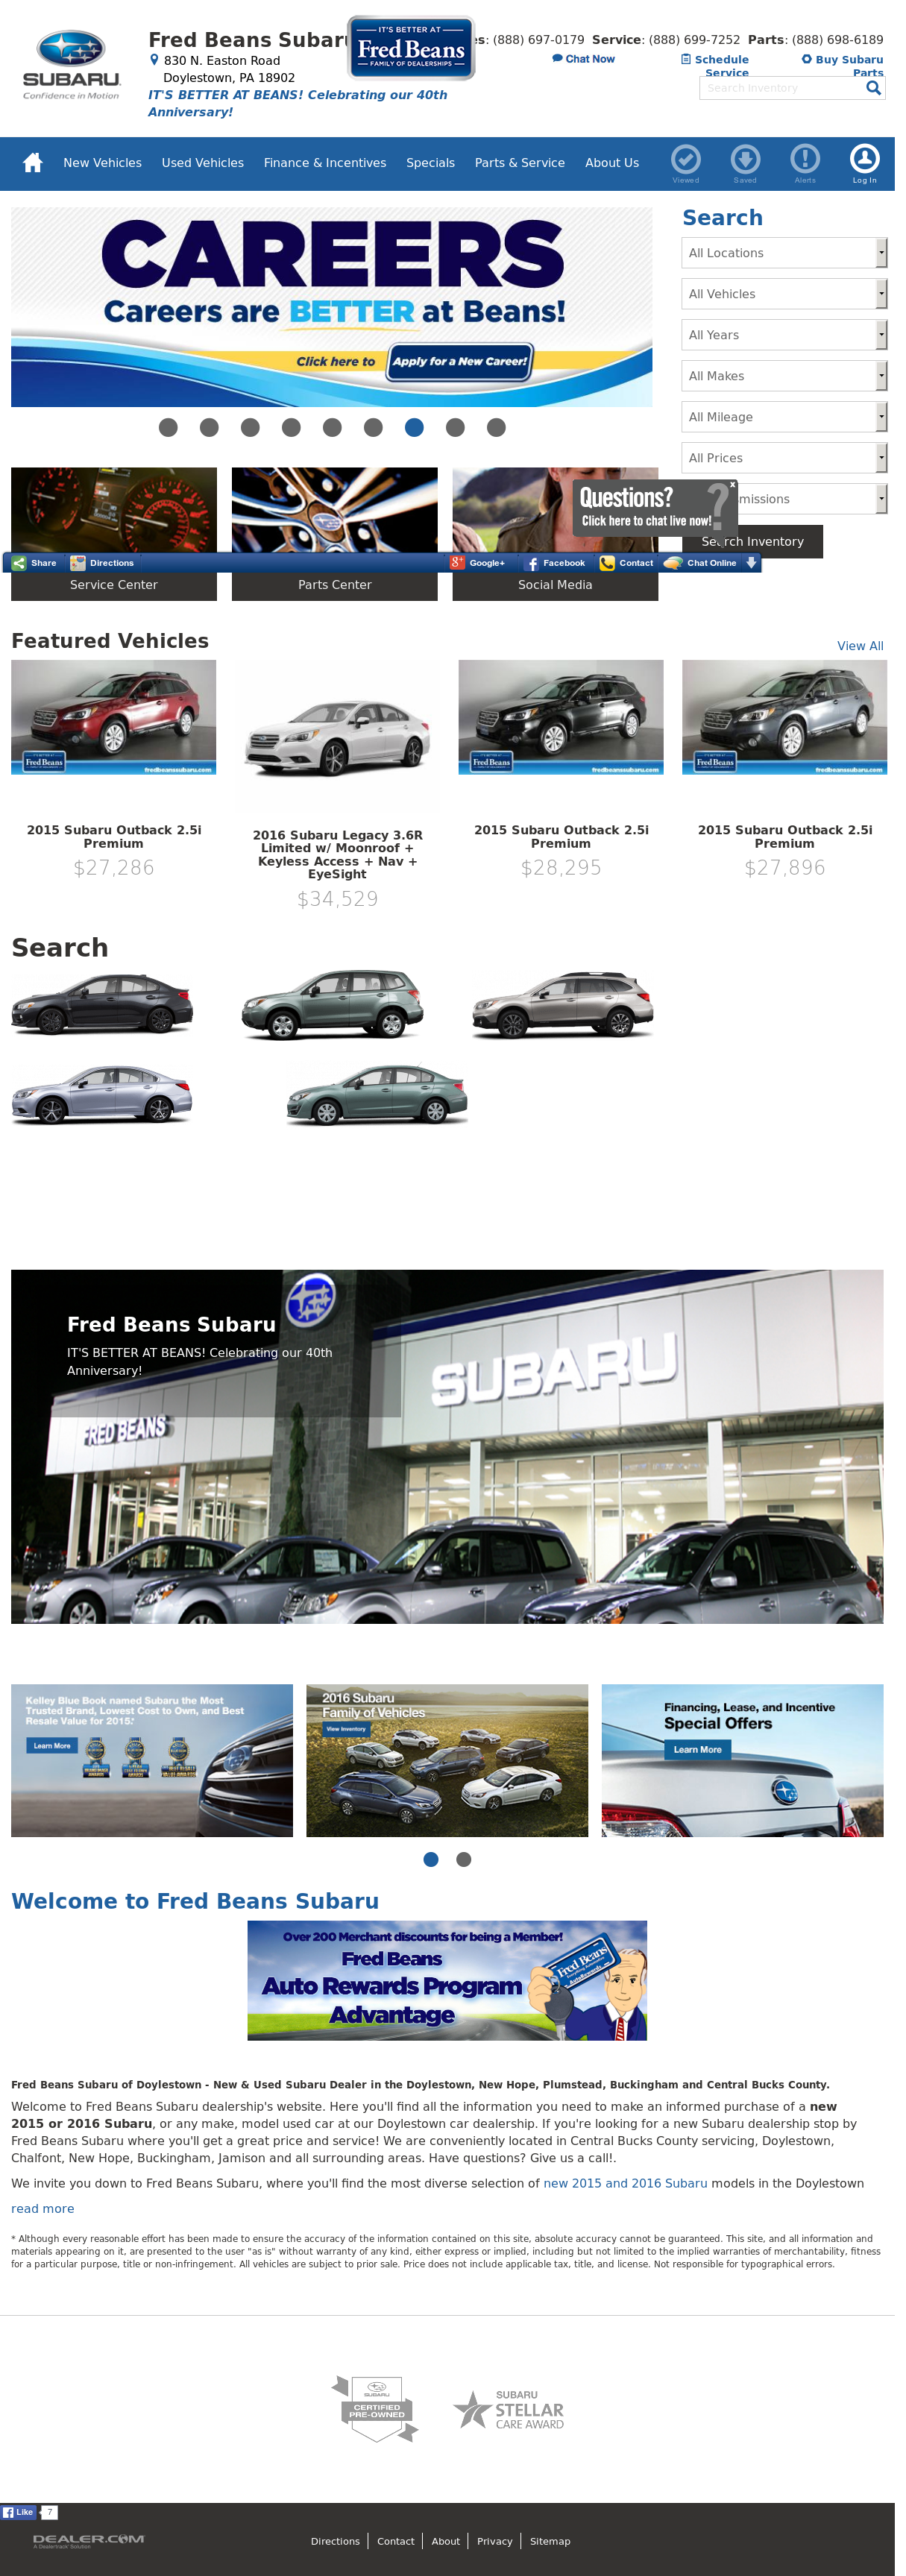 Fred Beans Subaru >> Fred Beans Doylestown | News of New Car Release